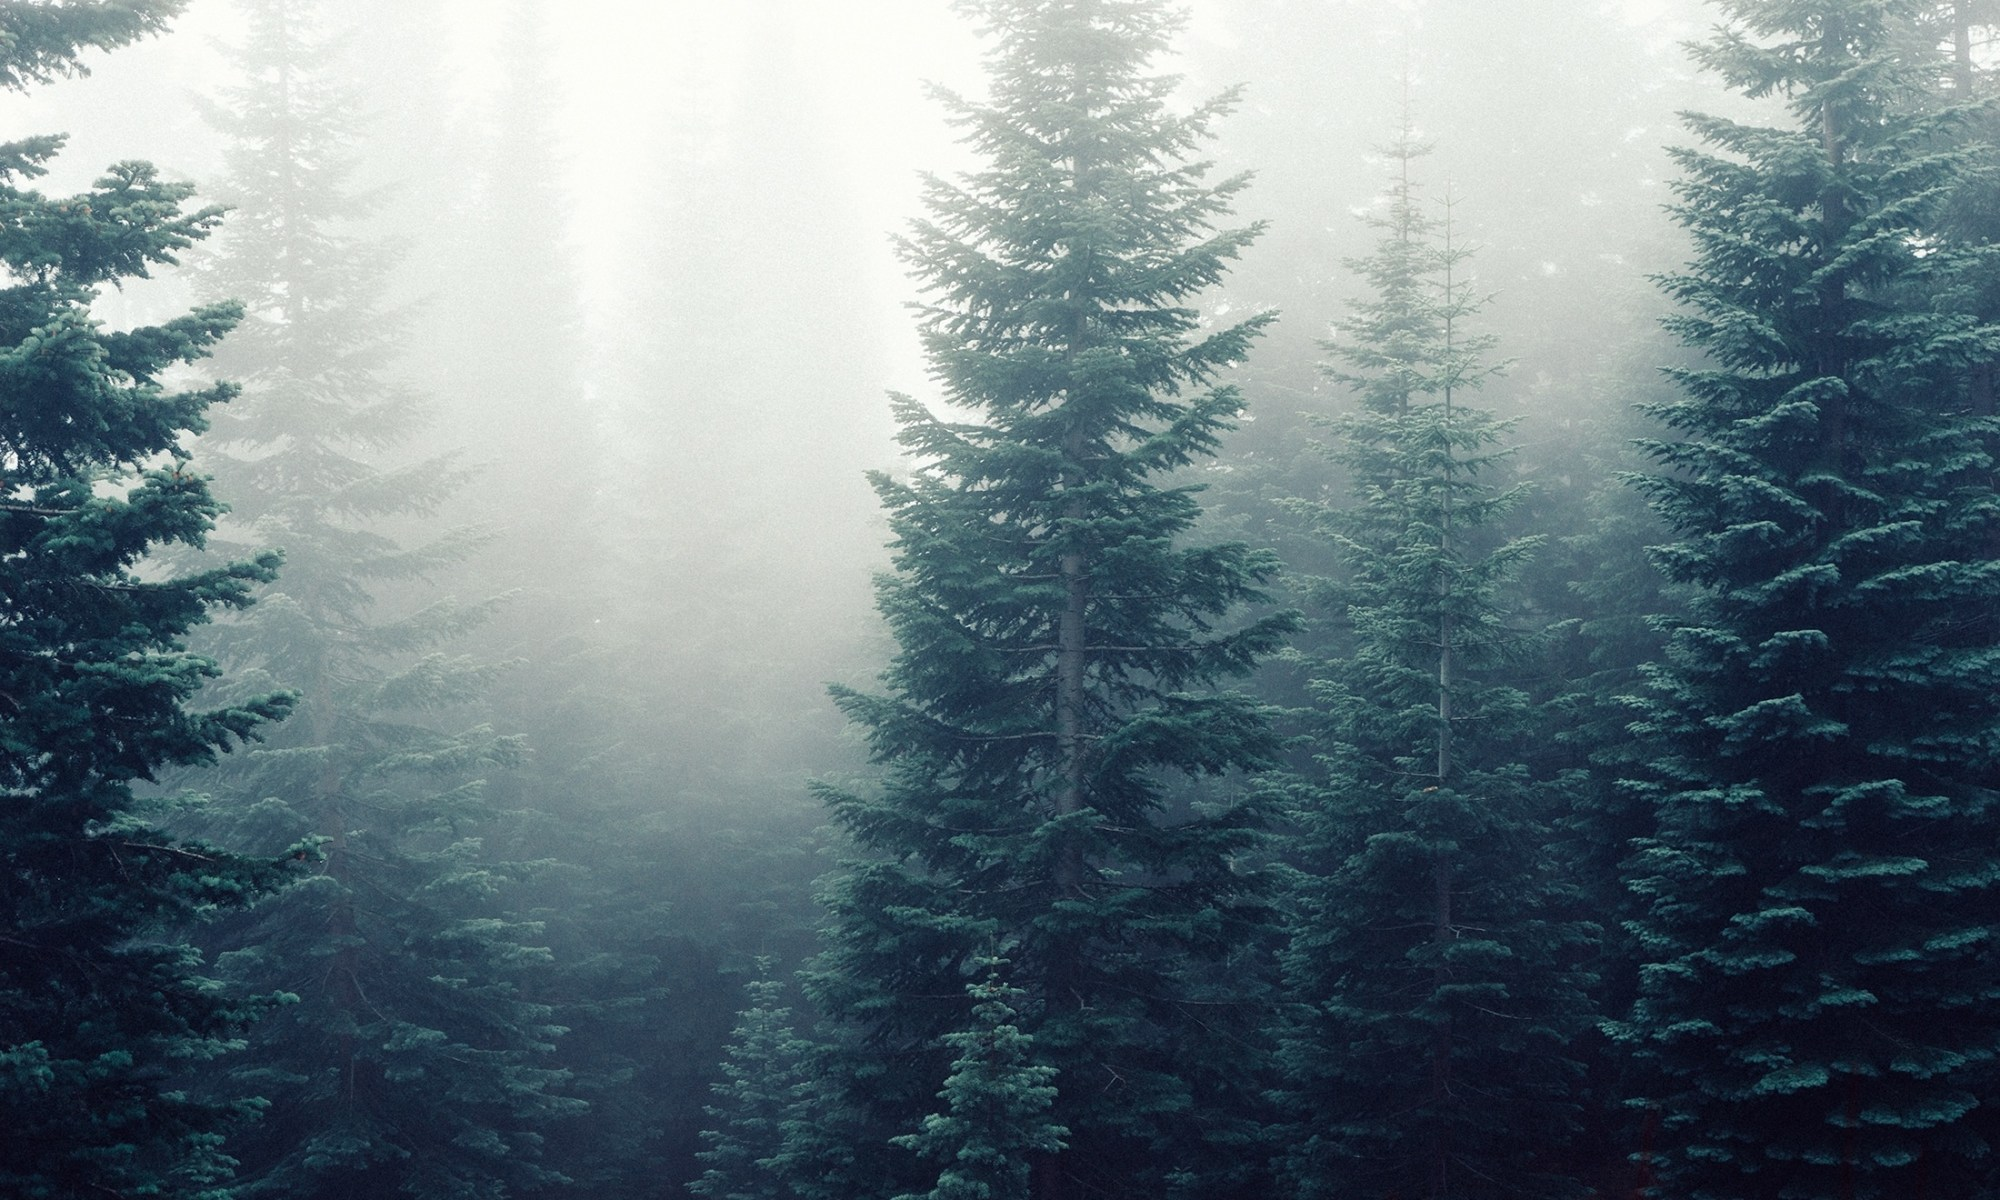 Evergreens in mist